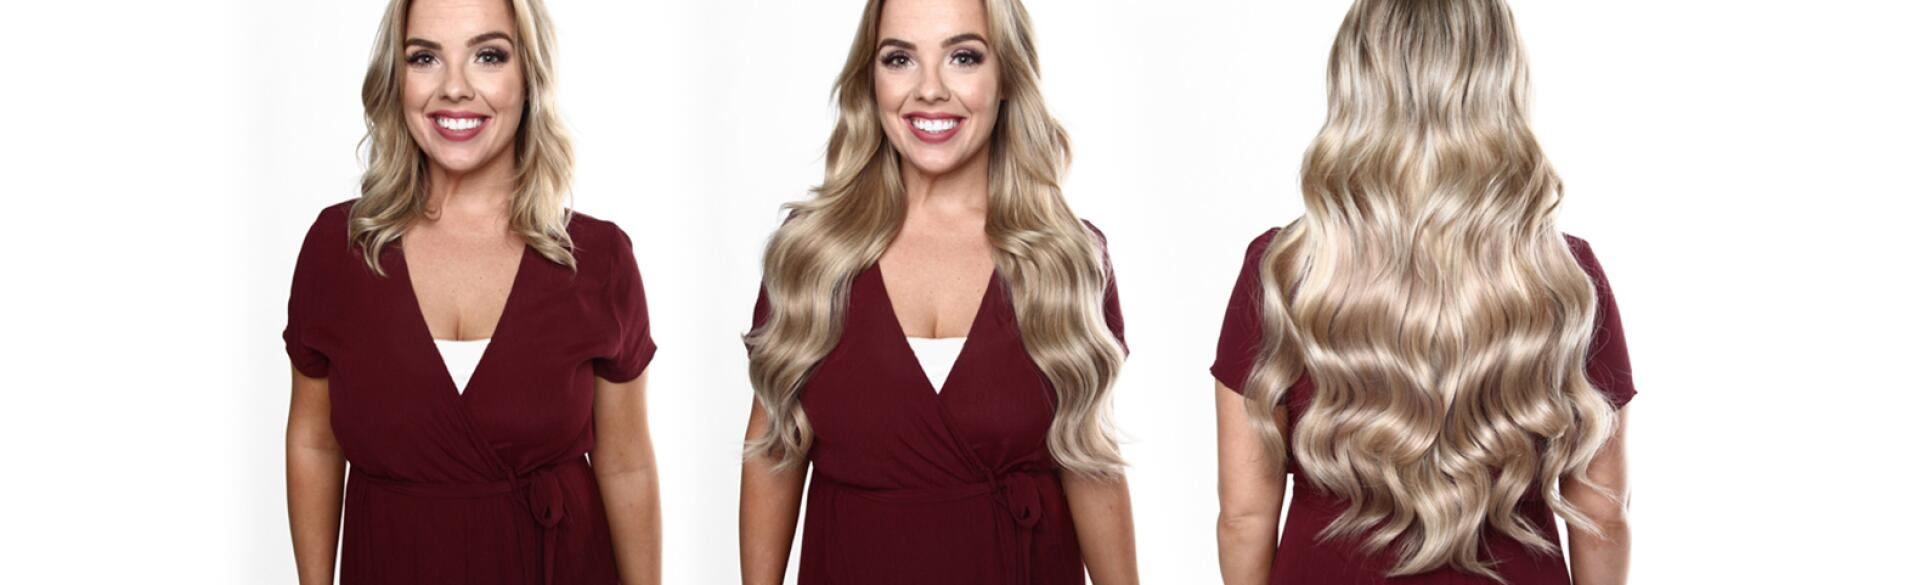 A set of before and after photos of a woman modeling halo hair extensions.